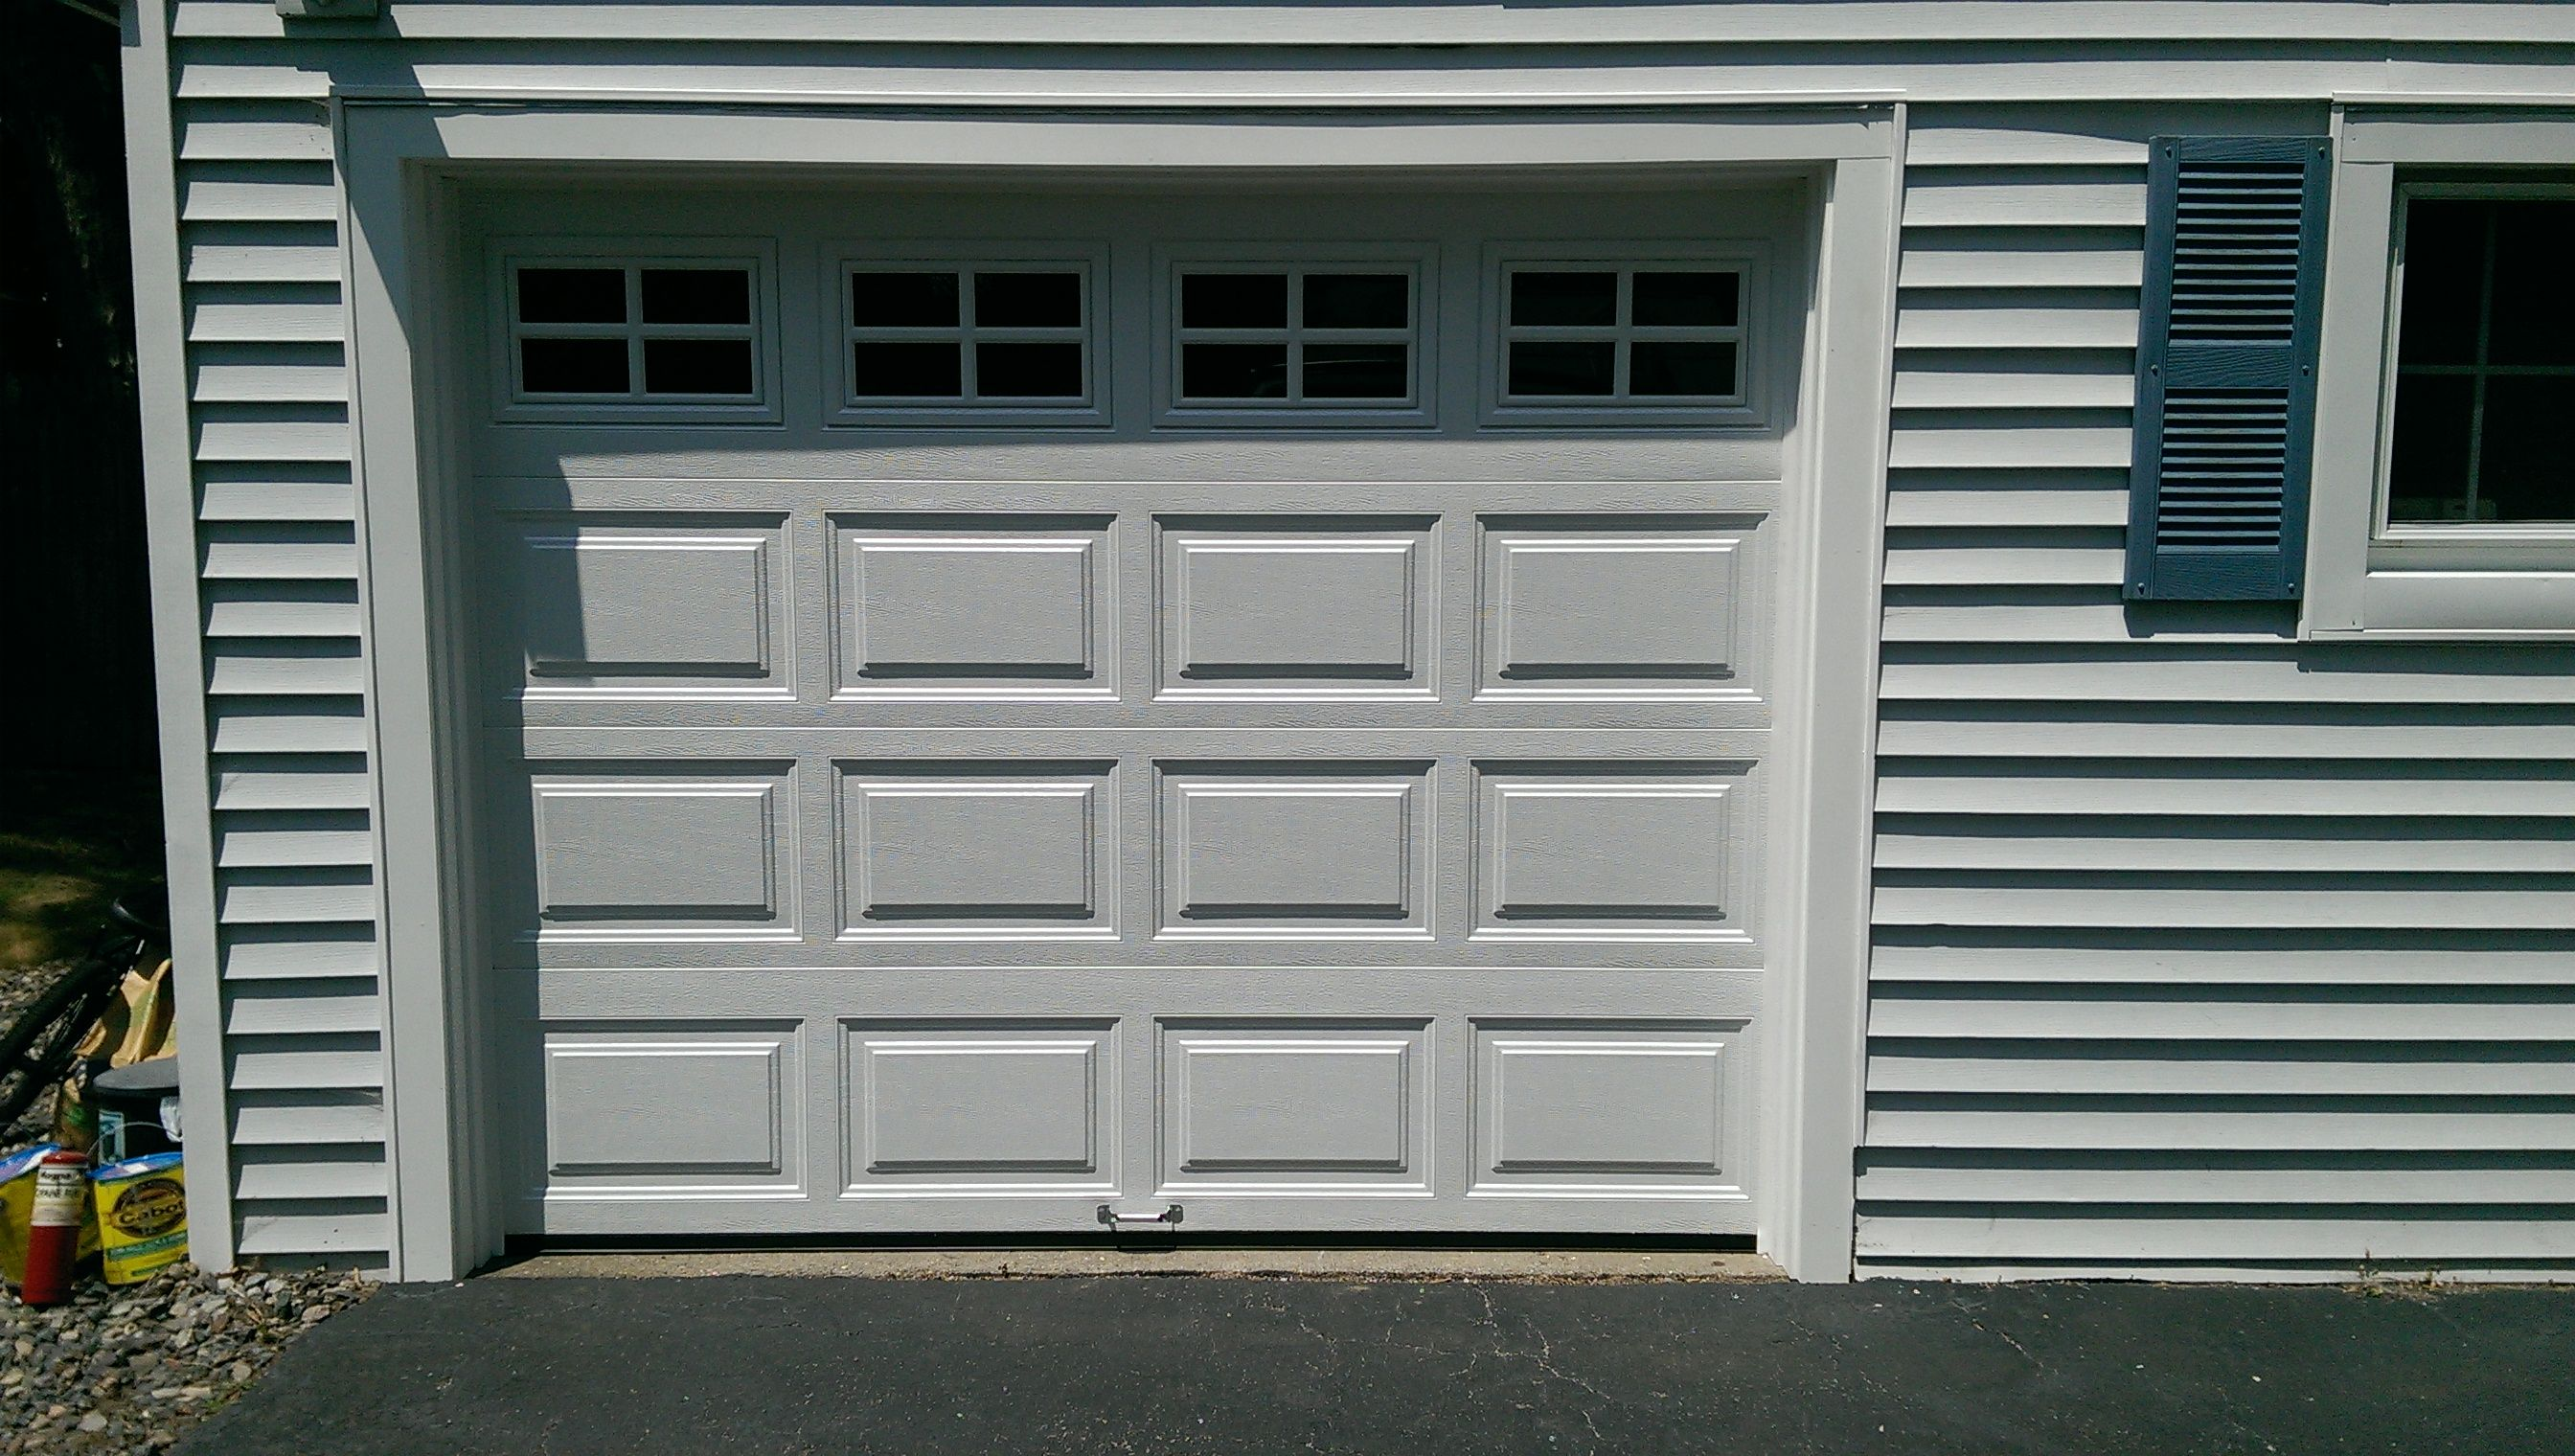 Clopaydoors Model 4050 Raised Panel Steel Insulated Garage Door In White With Colonial Glass Install Garage Doors Residential Garage Doors Garage Door Styles